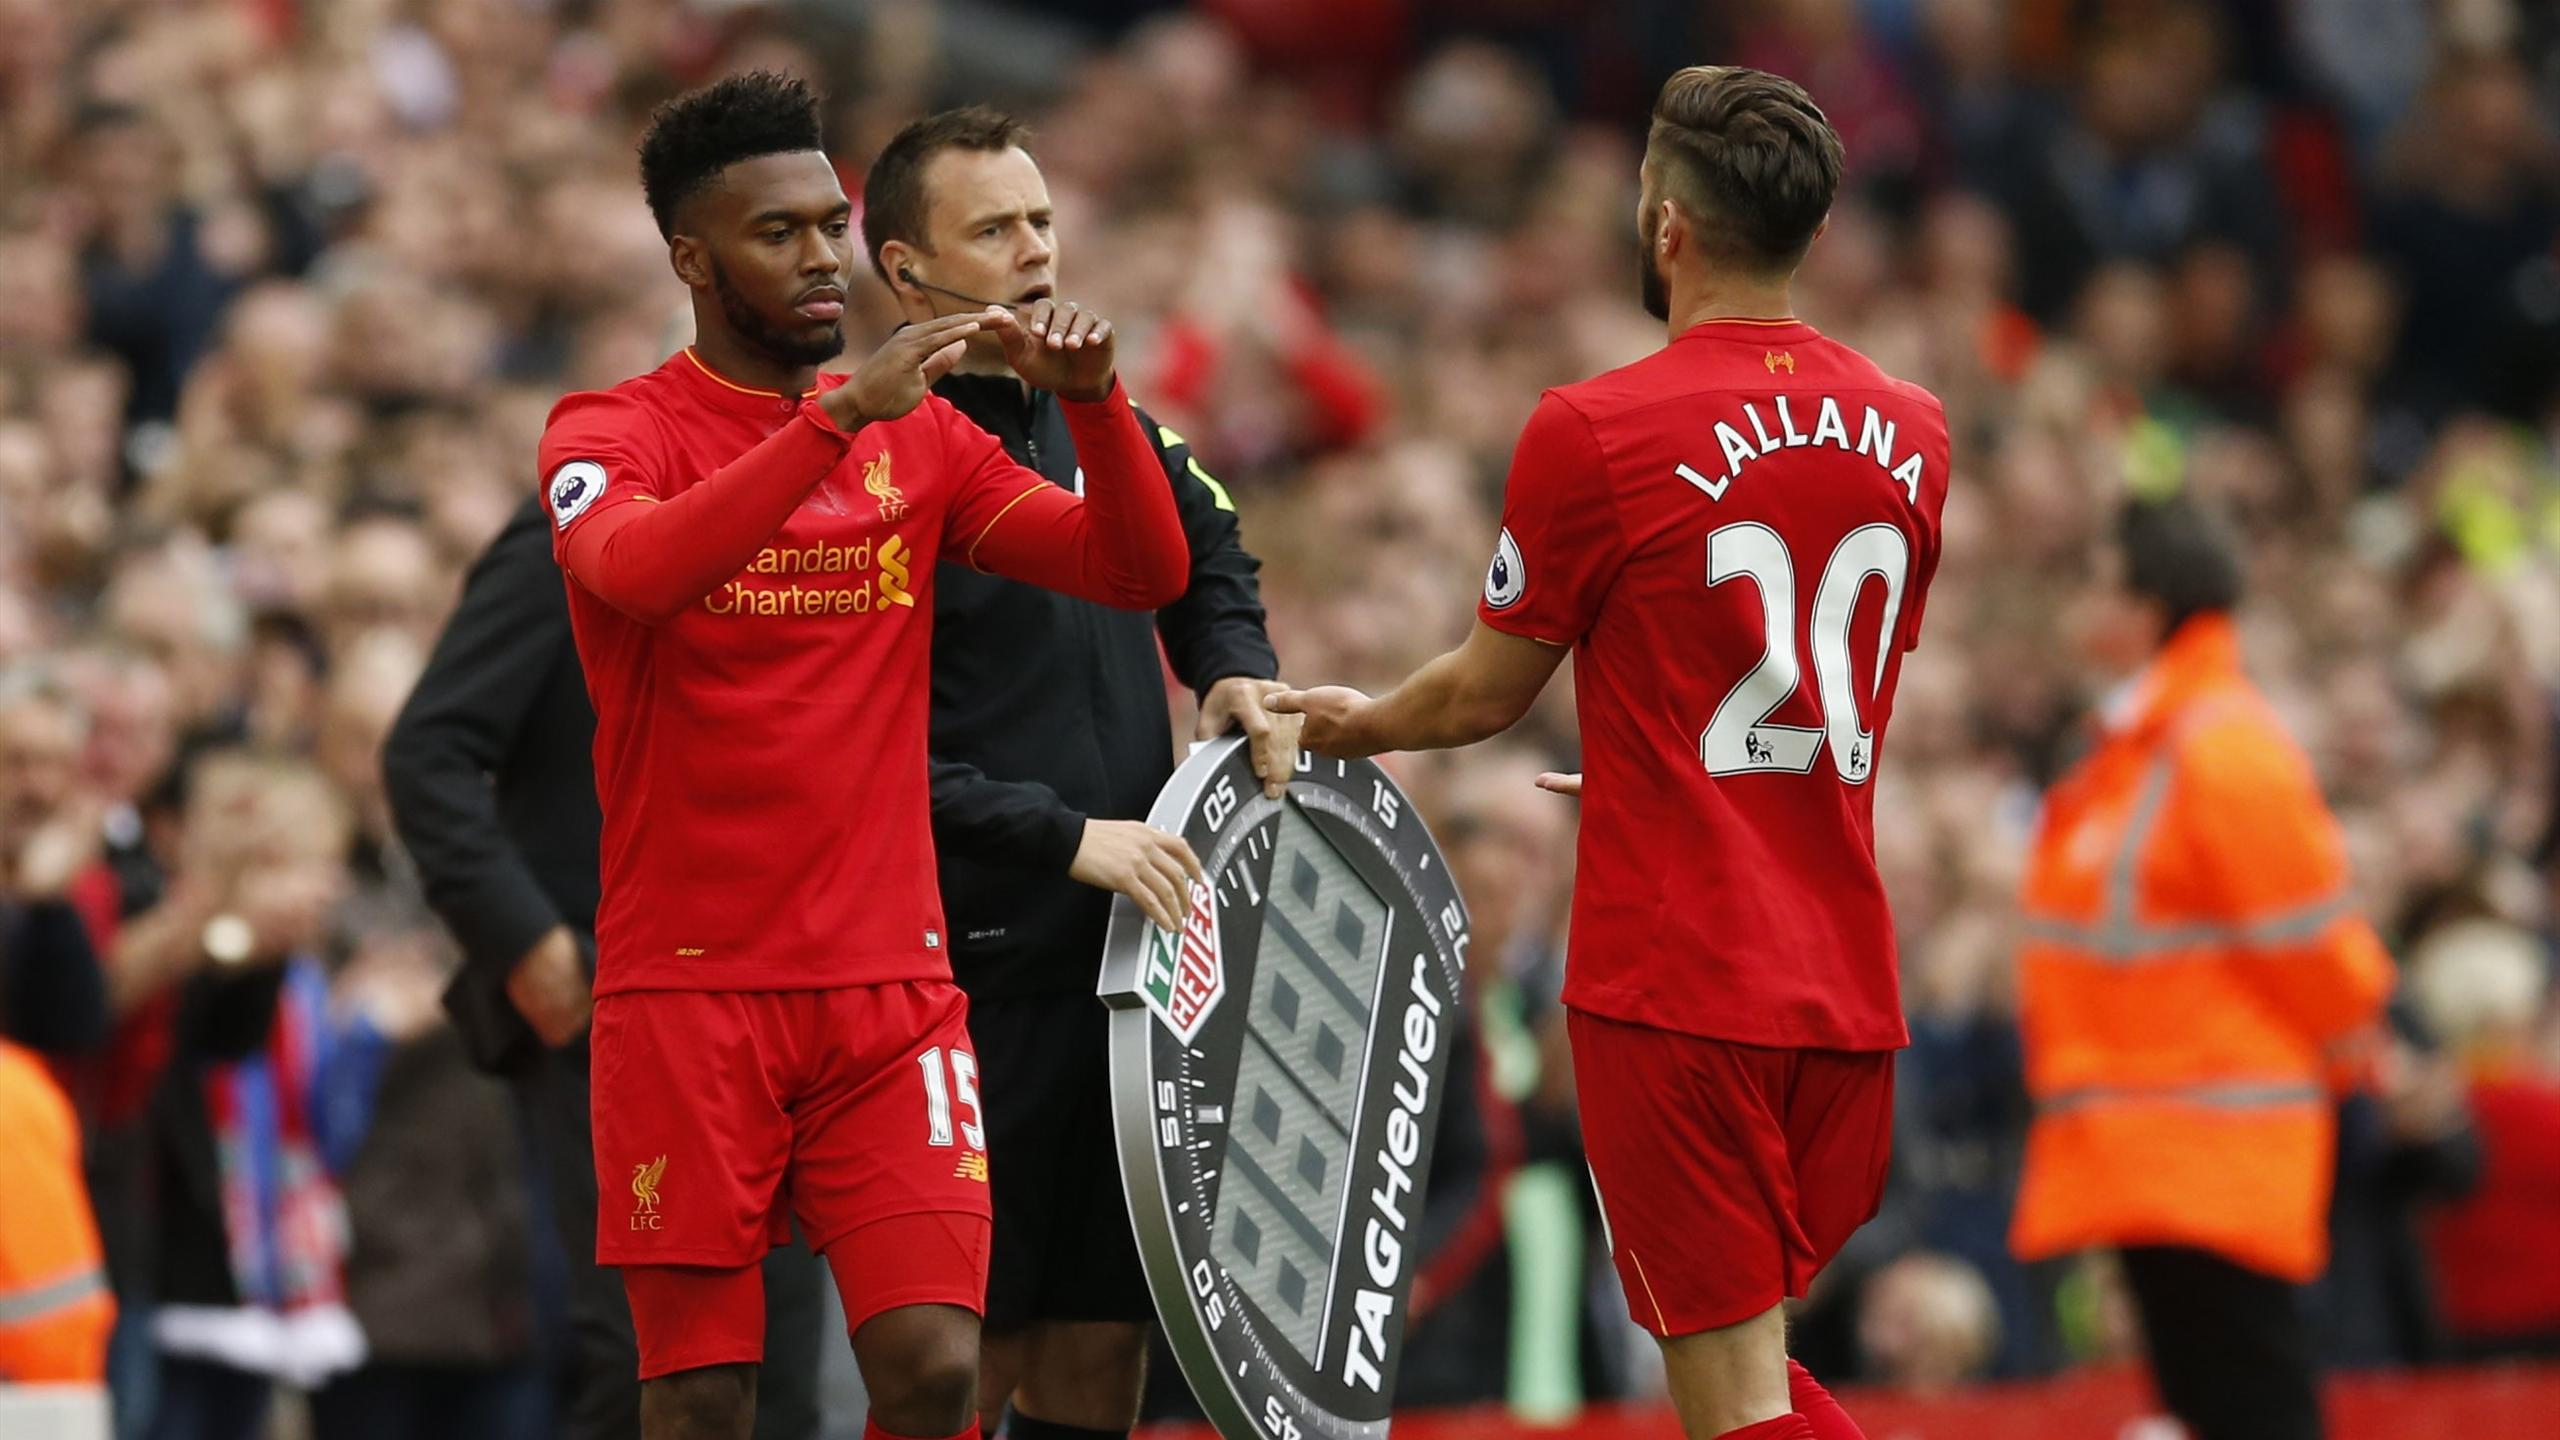 Liverpool's Daniel Sturridge comes on as a substitute to replace Adam Lallana